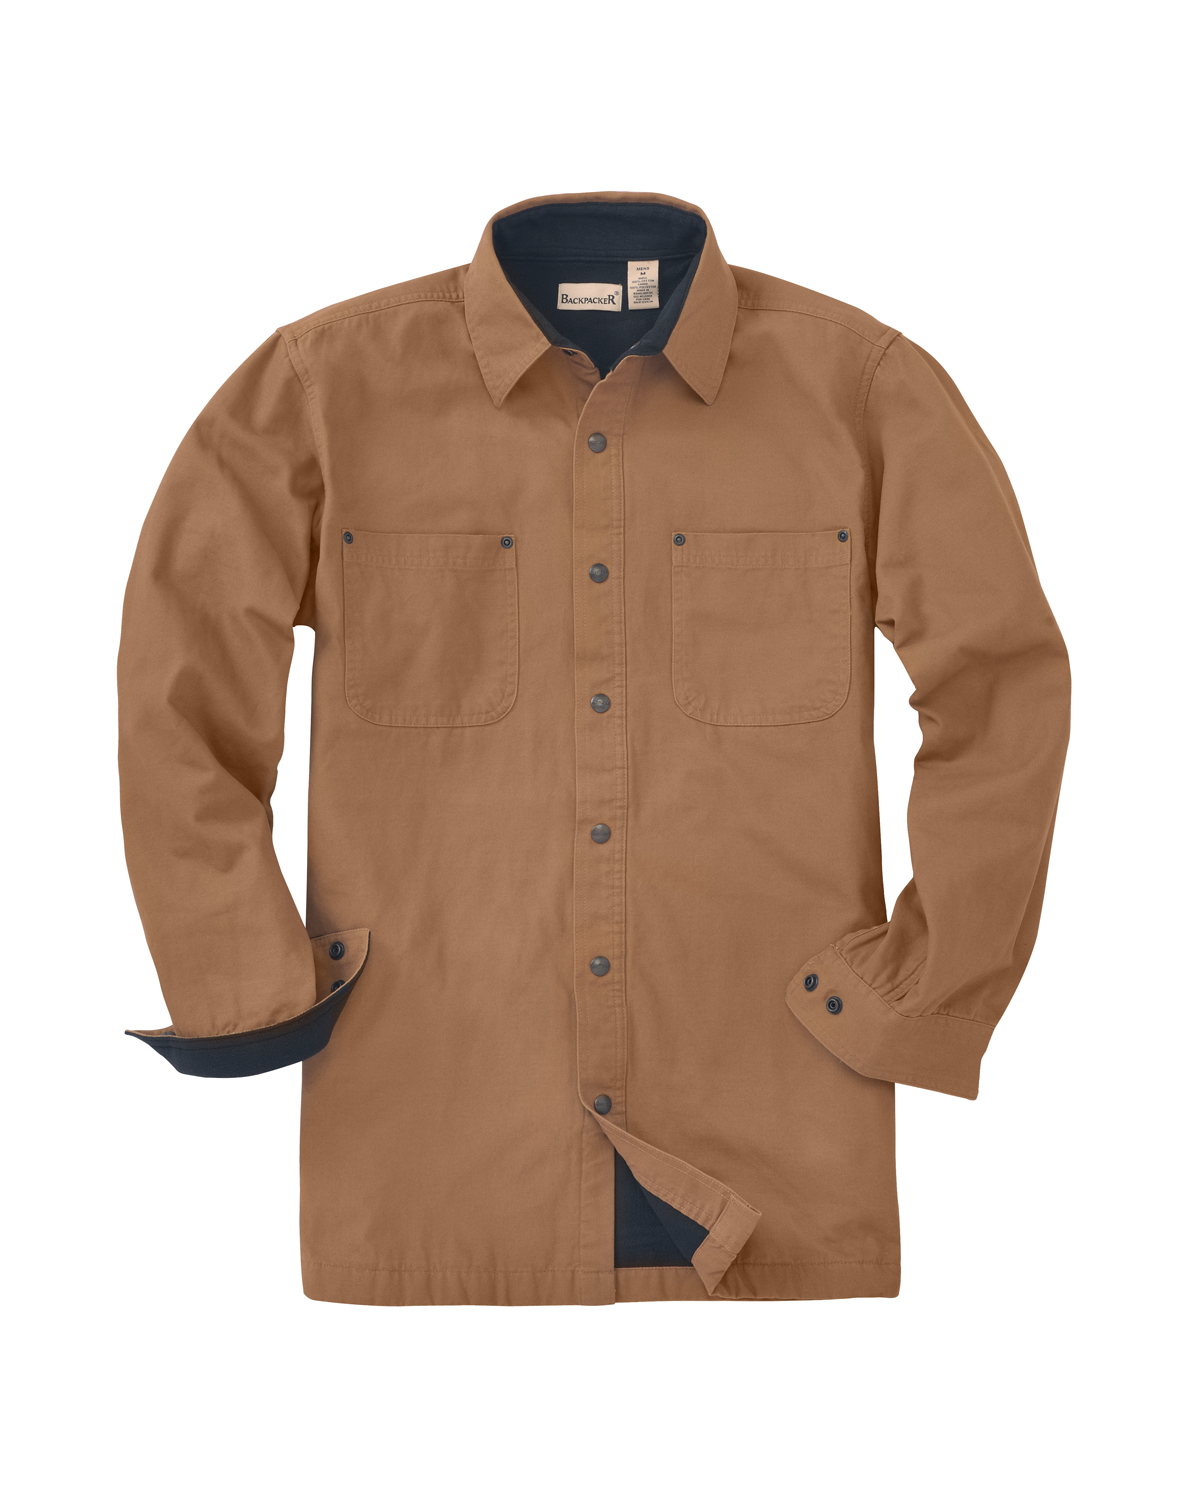 Men's Great Outdoors Long-Sleeve Jac Shirt